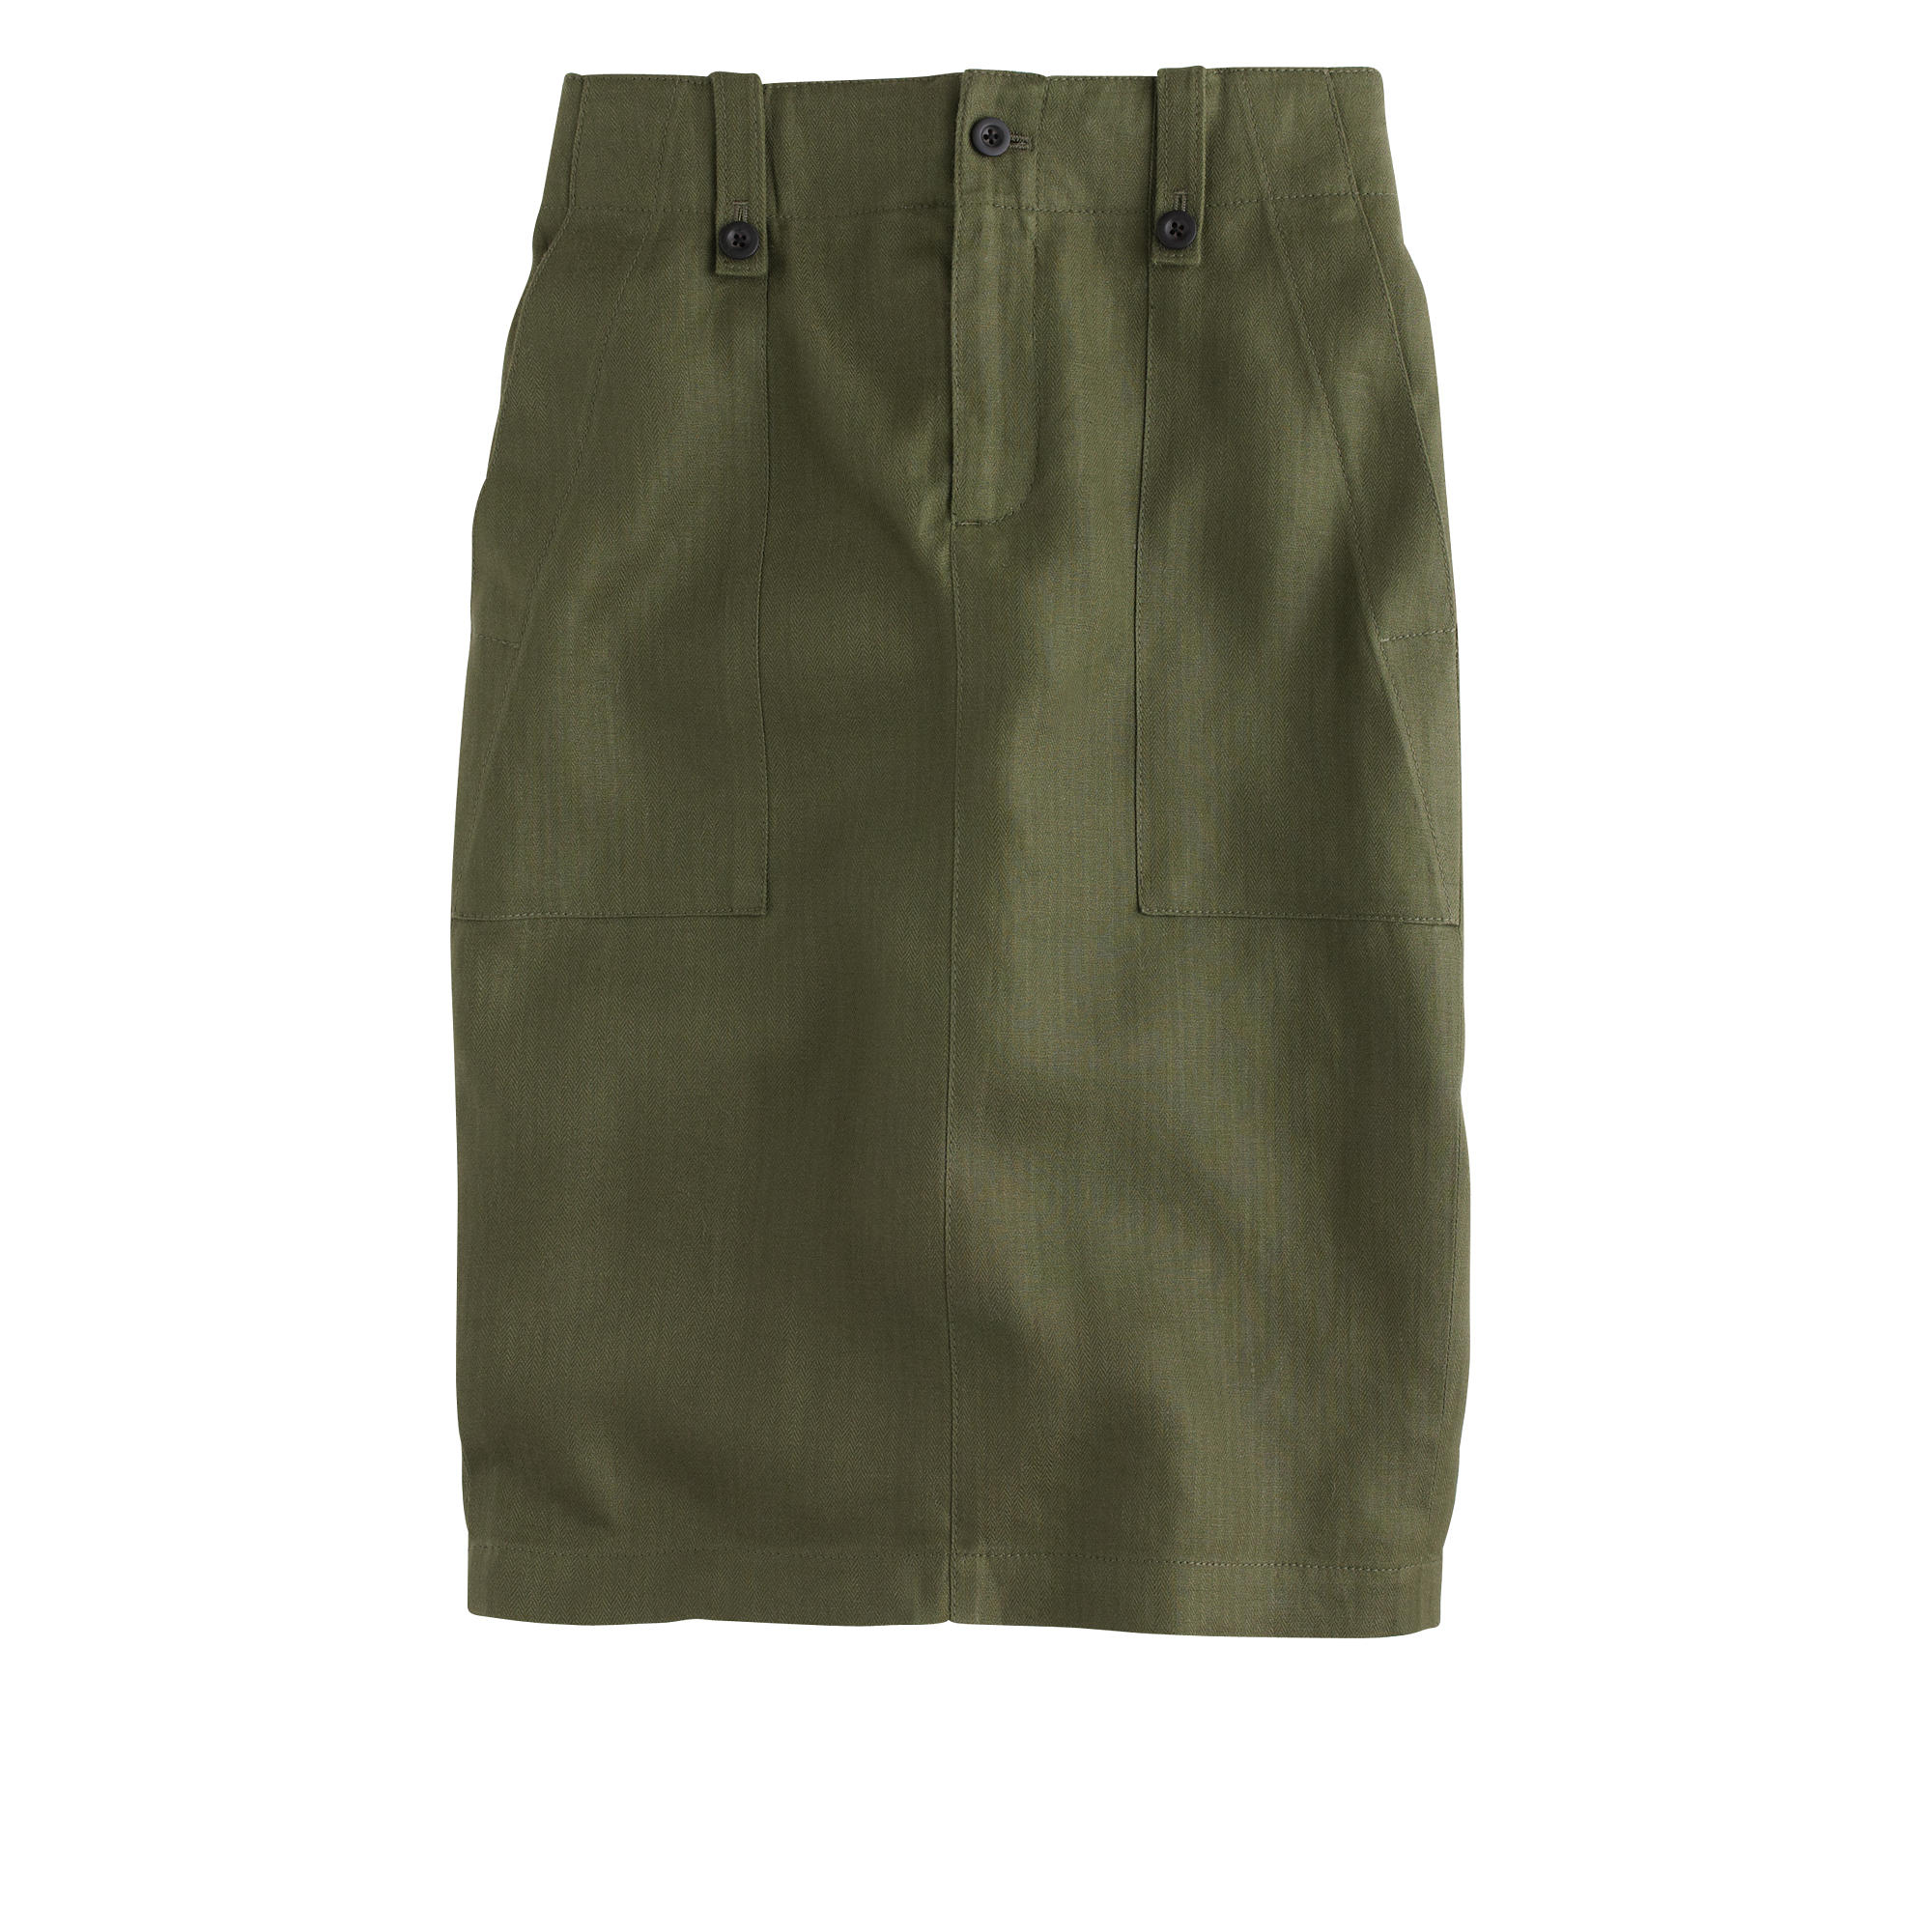 J Crew Petite Linen Cargo Pencil Skirt In Green Olive Lyst